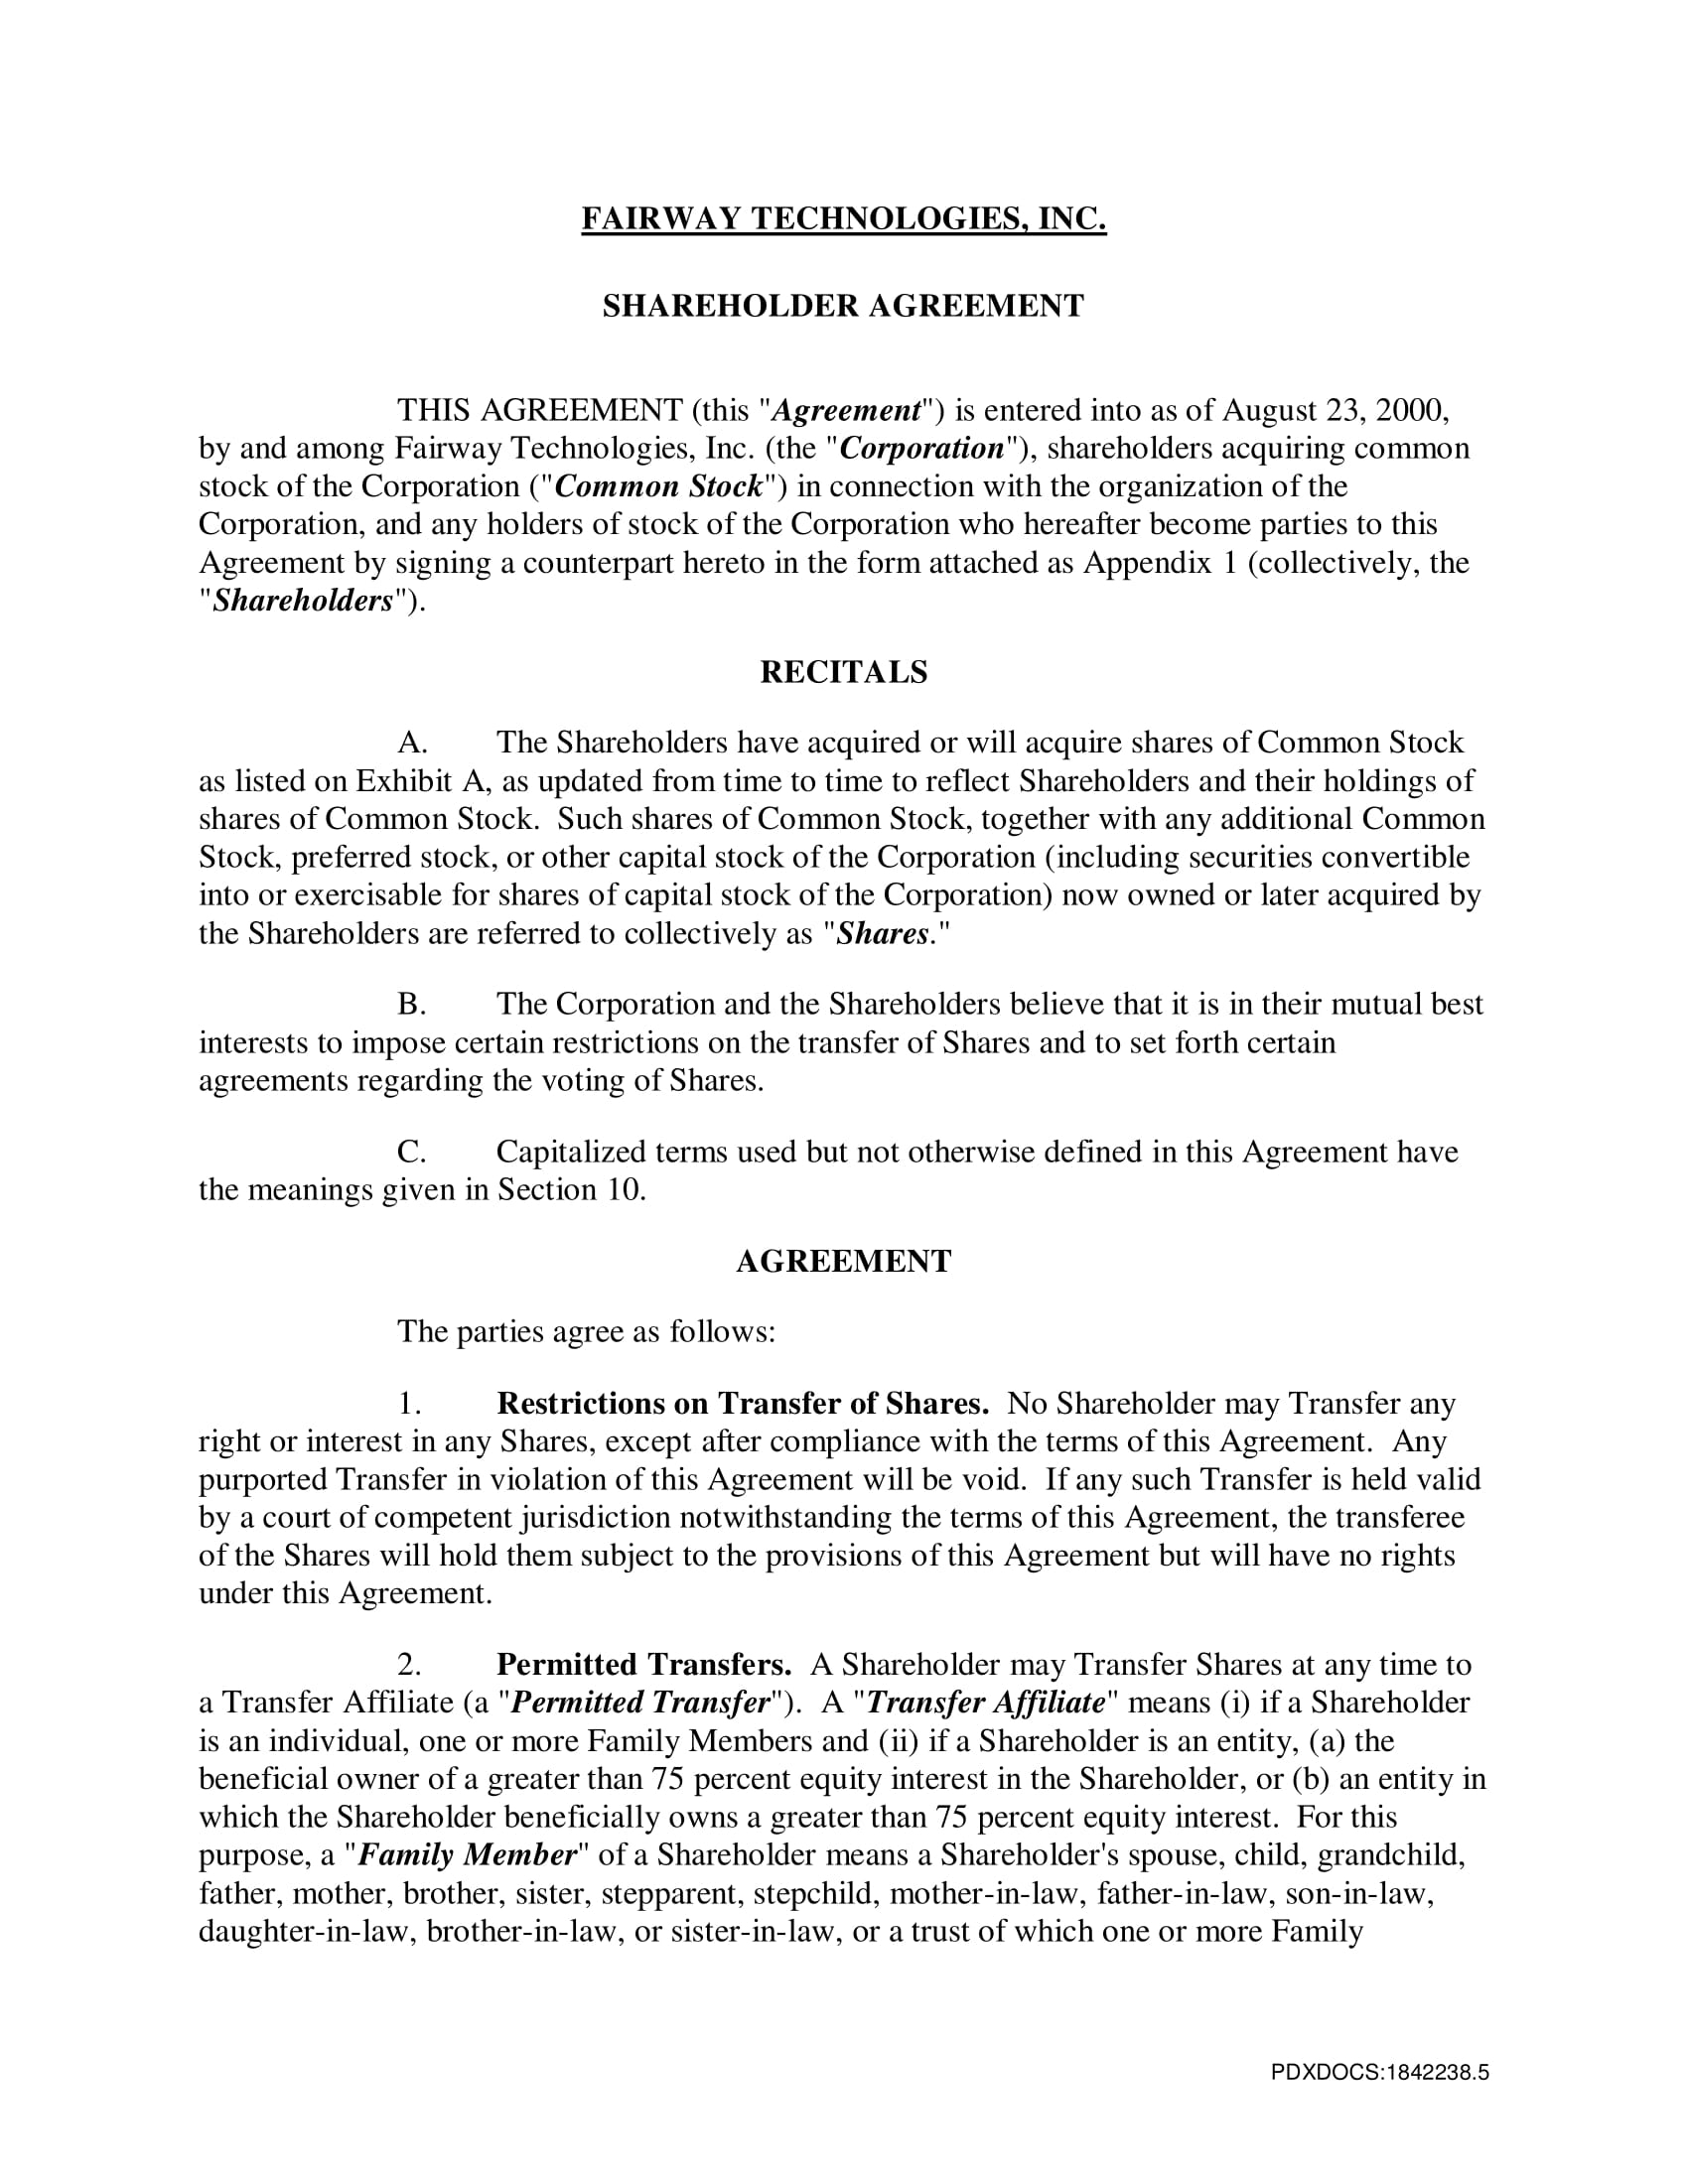 Employee Key Holder Agreement Template - The Best Agreement Of 2018